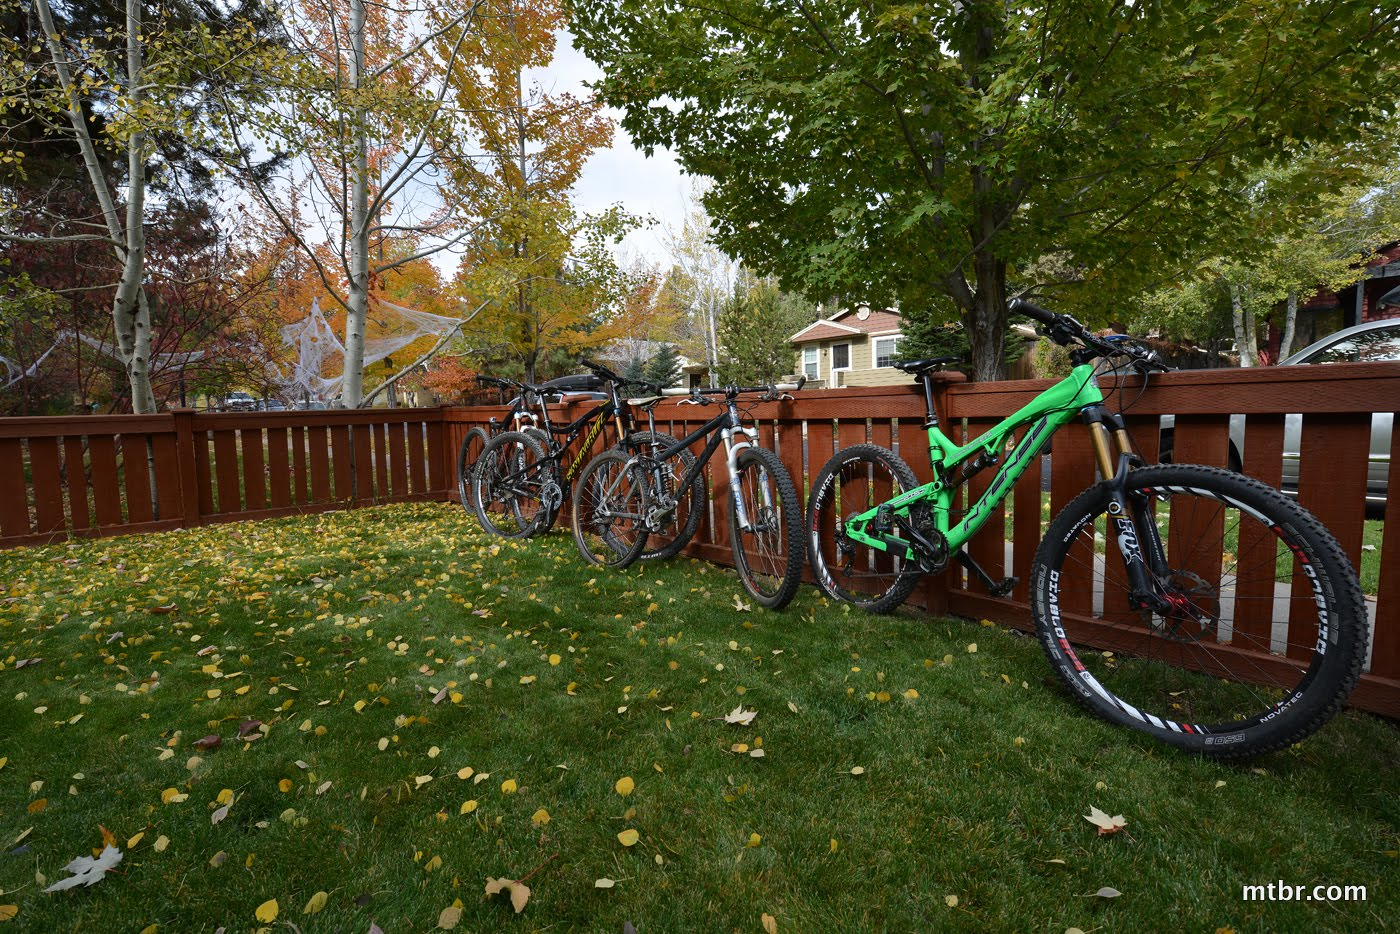 Bikes in the Yard